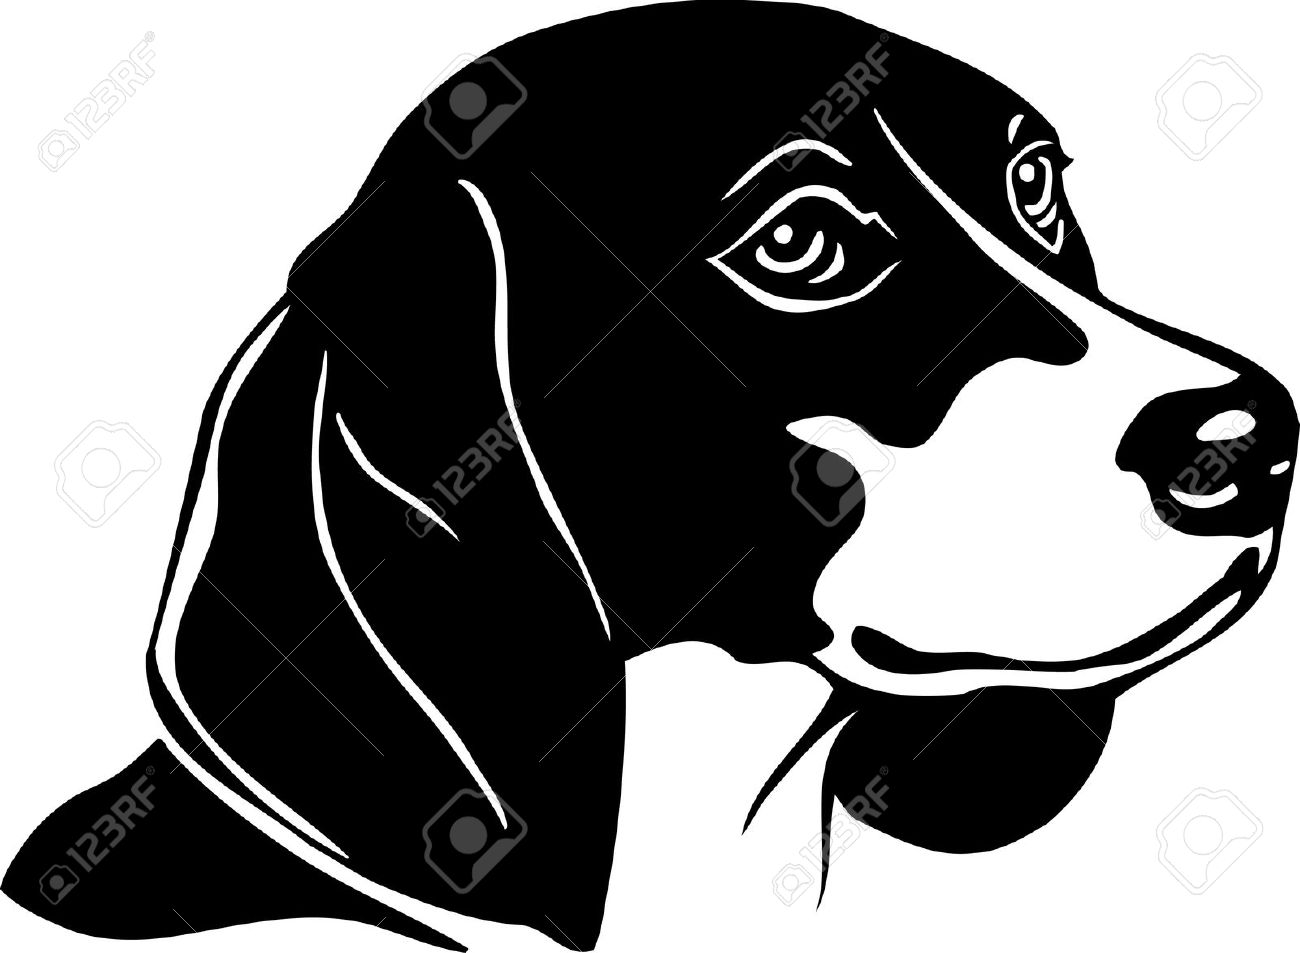 Beagle clipart black and white. Free download clip art